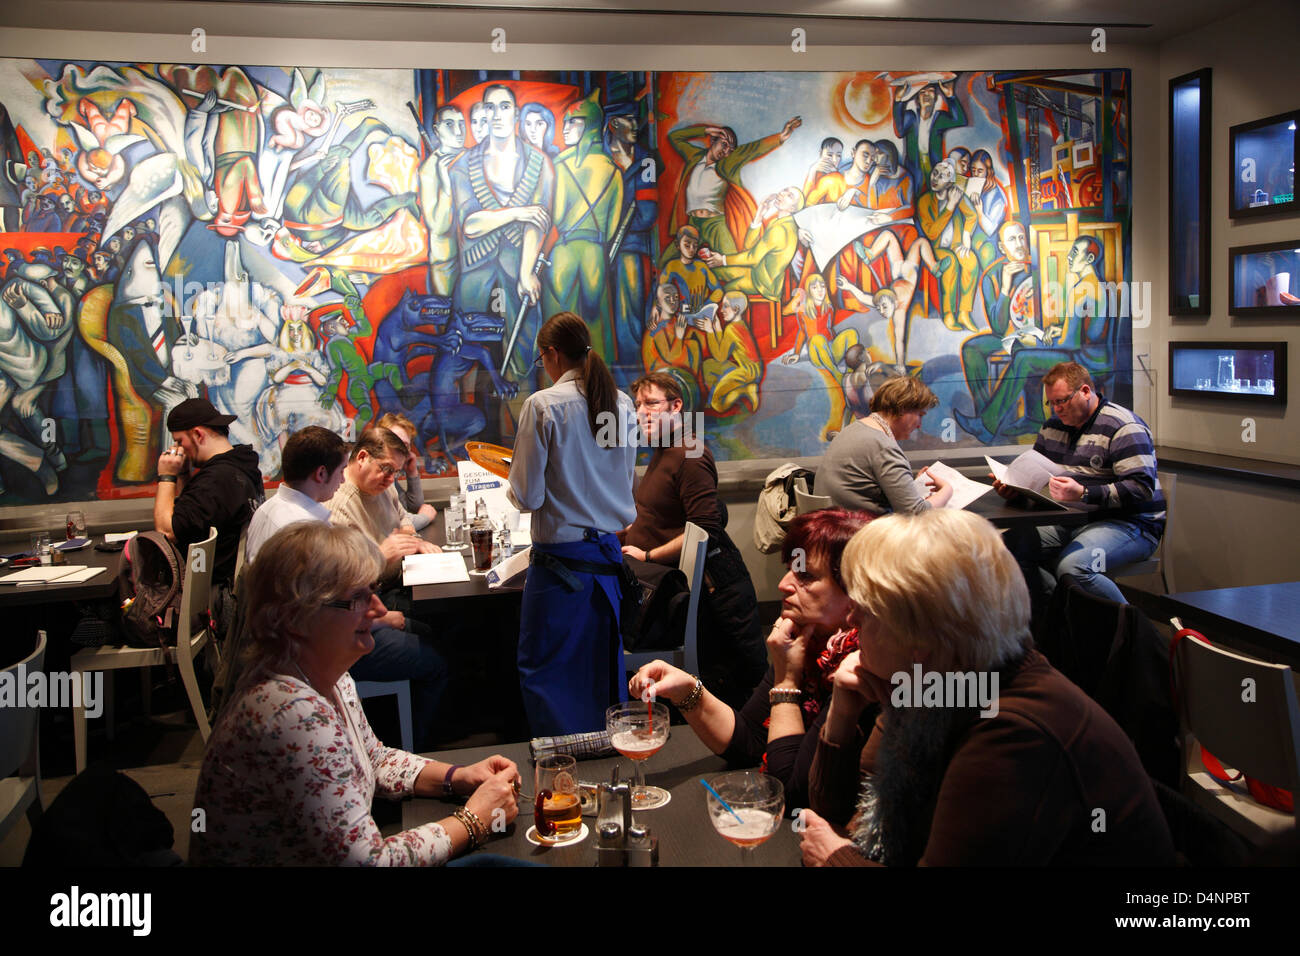 Restaurant DOMKLAUSE in DDR-Museum at the Spree, Berlin, Germany - Stock Image